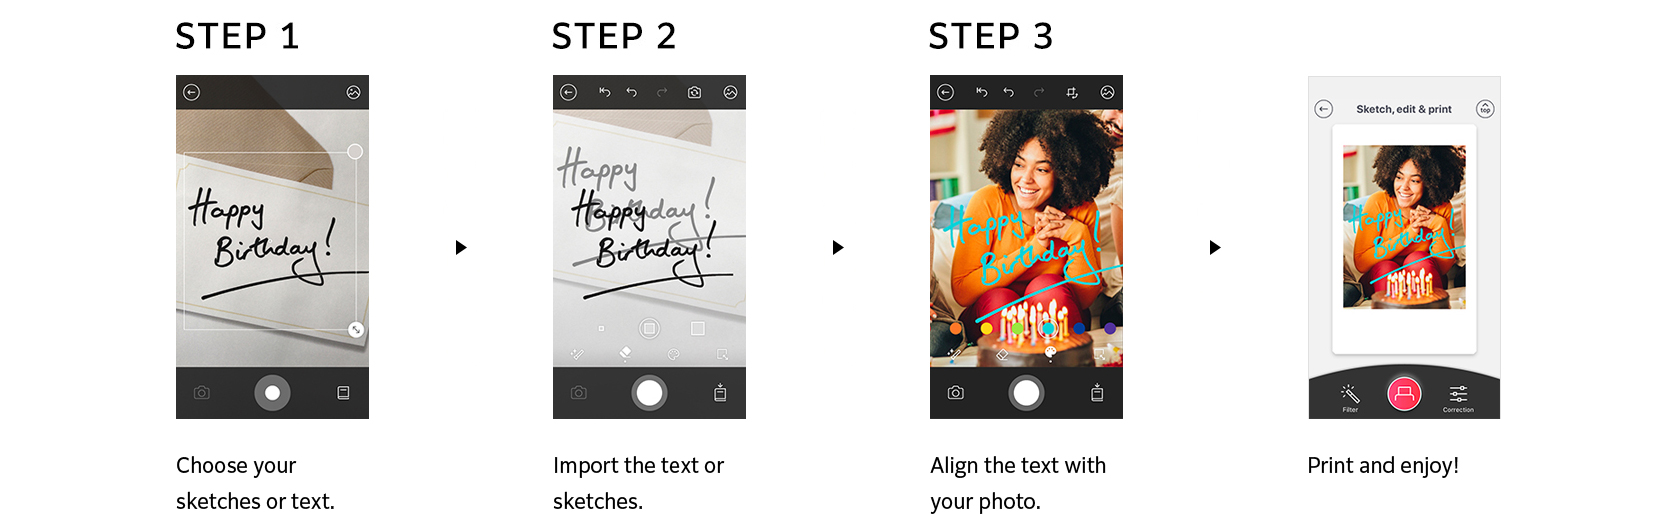 [photo] Take picture of text/sketch, import it, align text/sketch on photo, and print new photo with text/sketch on it